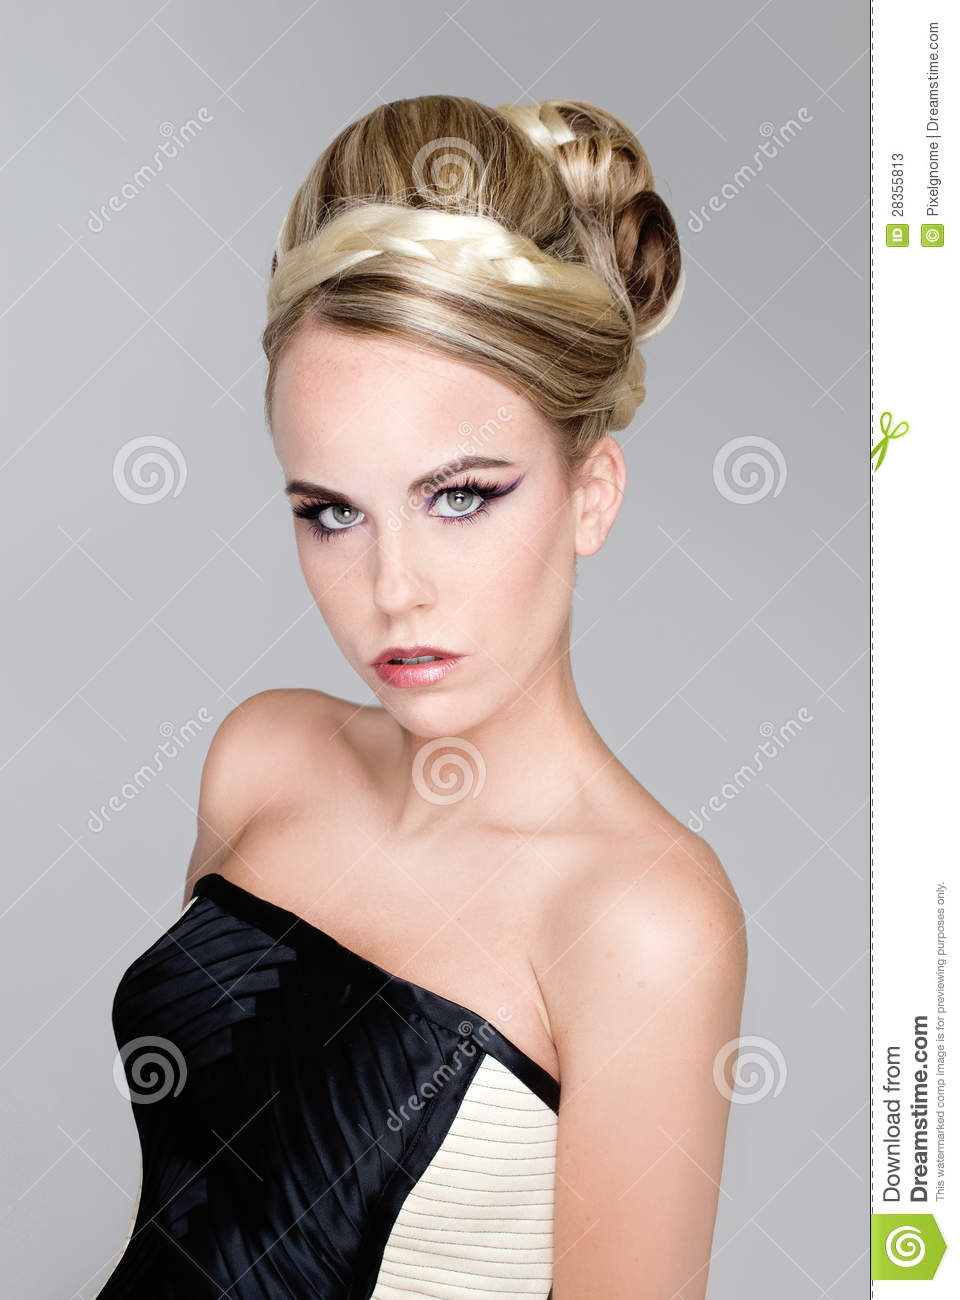 new hair style models salon fashion hair model stock photos image 28355813 8350